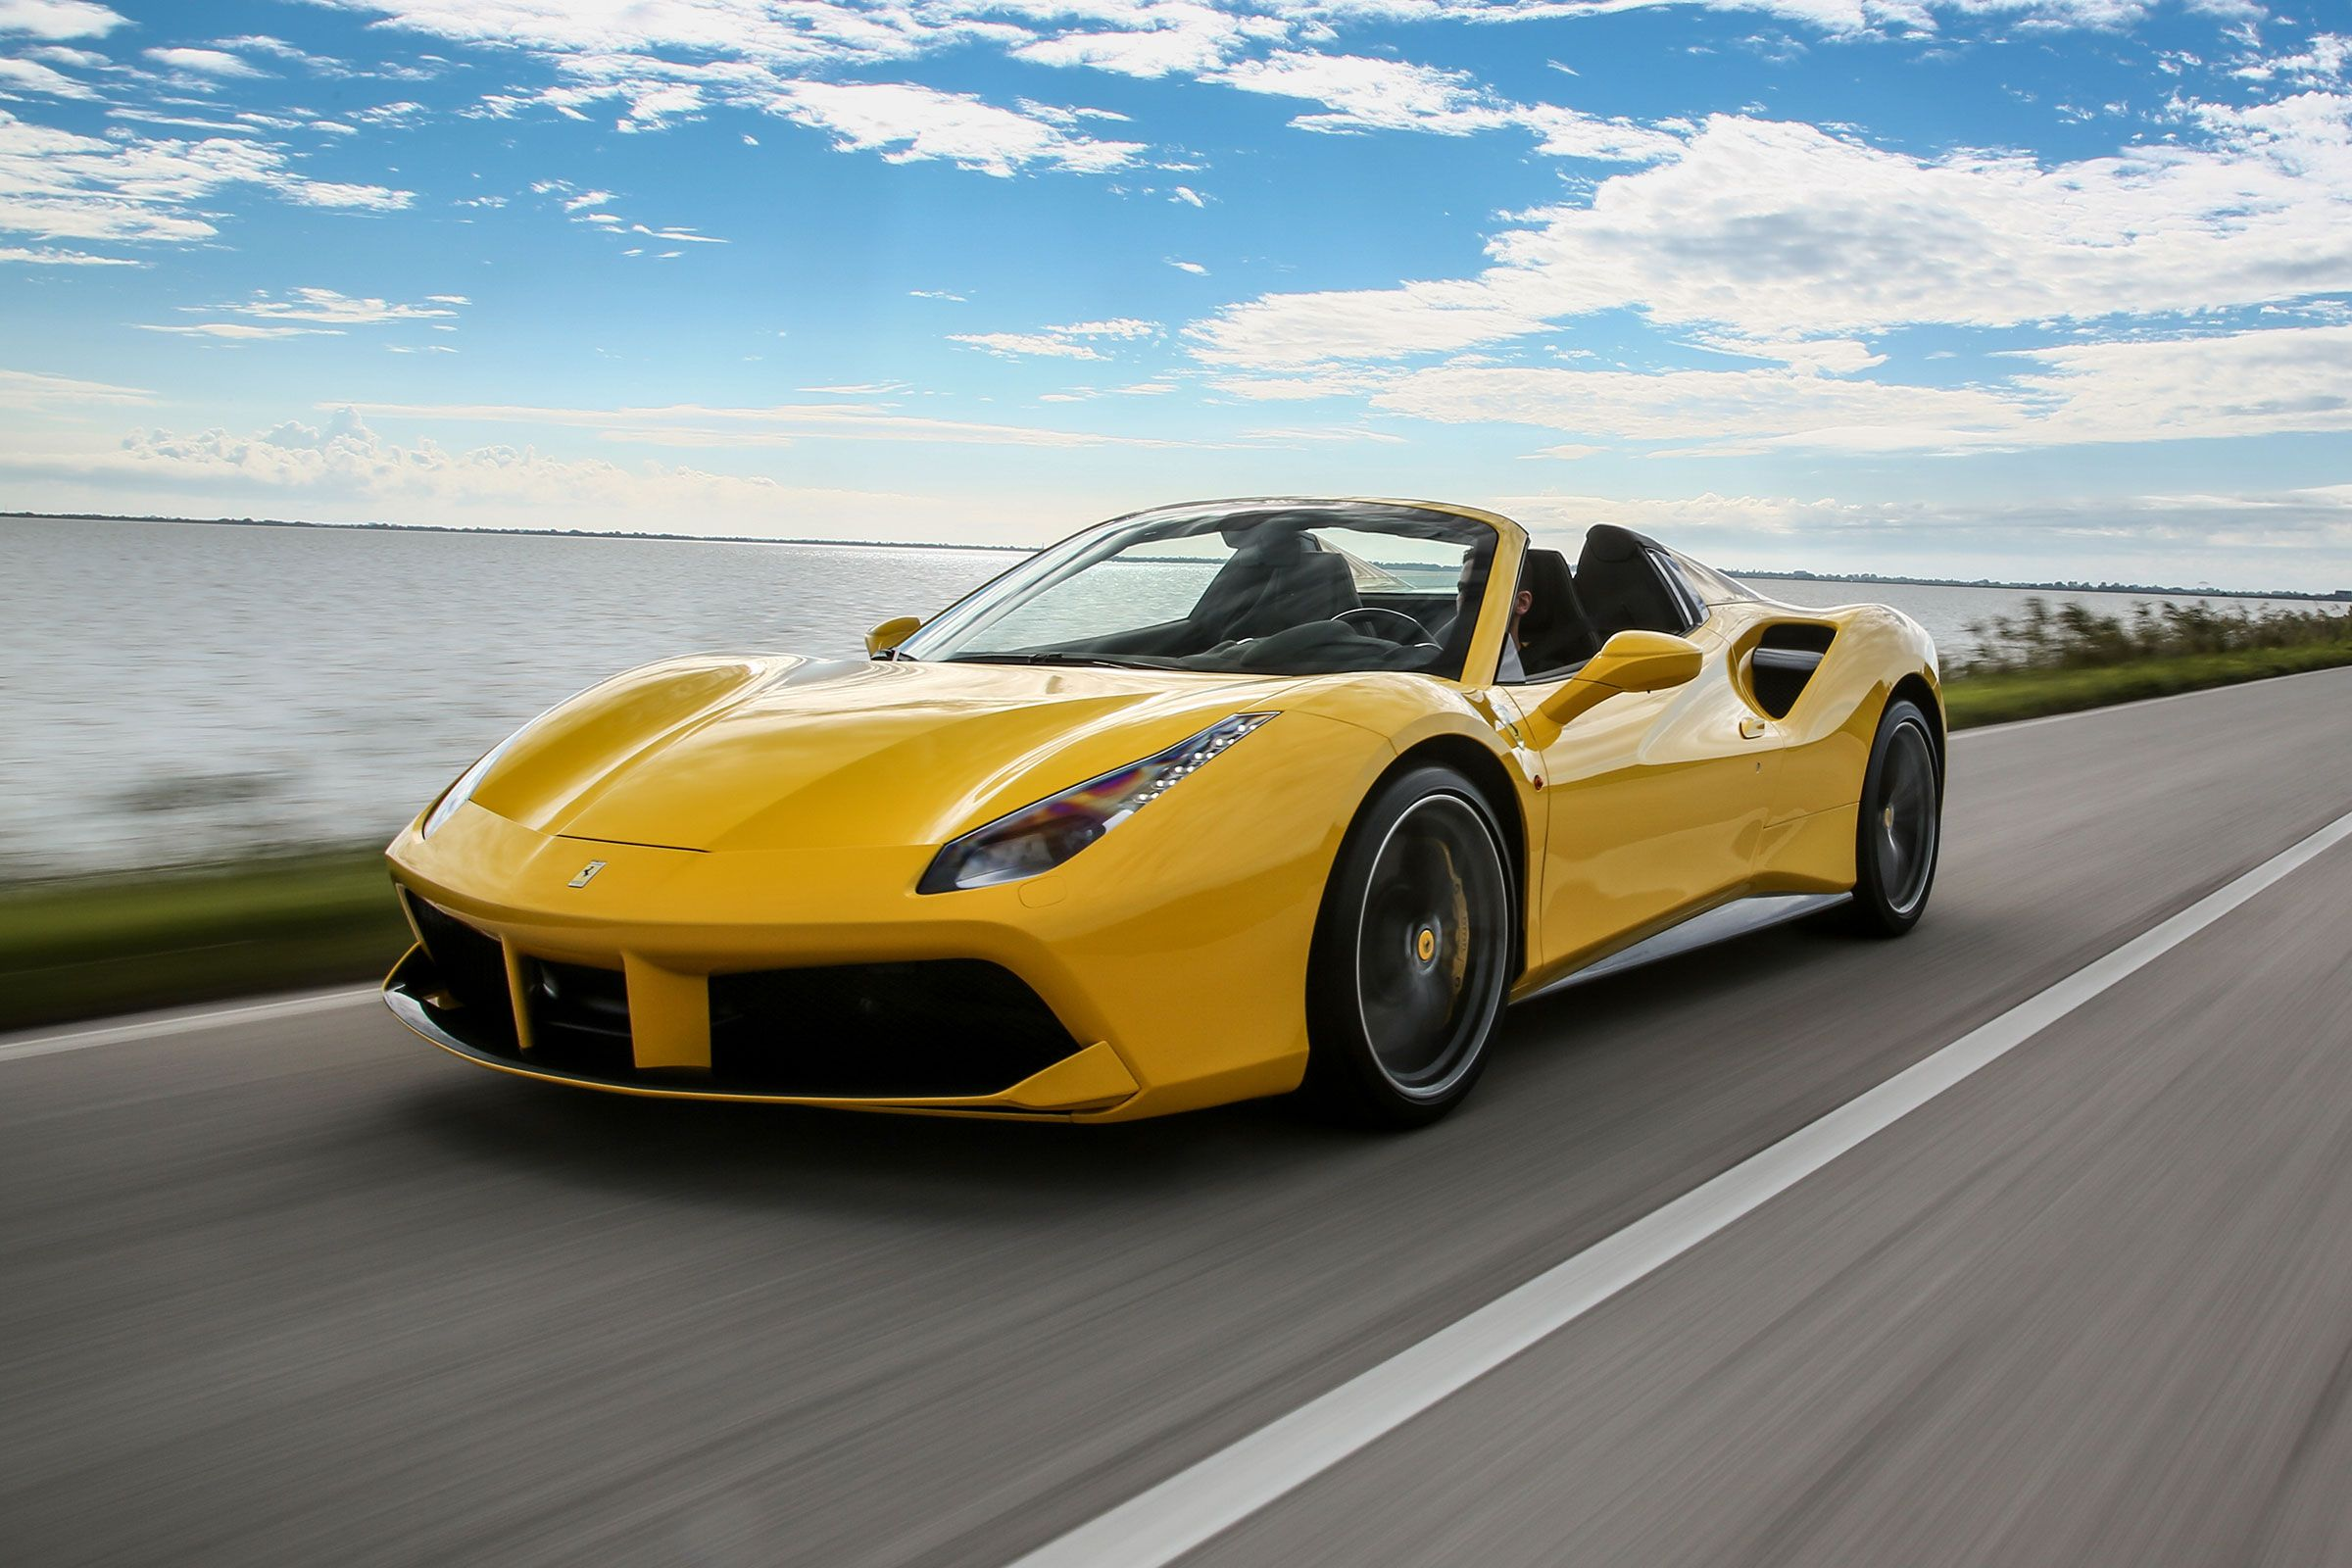 Can You Picture Yourself Behind The Wheel Of A Ferrari 488 Spider We Sure Can Learn More Wt Www Pfsllc Com Carfinancing Lu Ferrari 488 Ferrari Ferrari Car